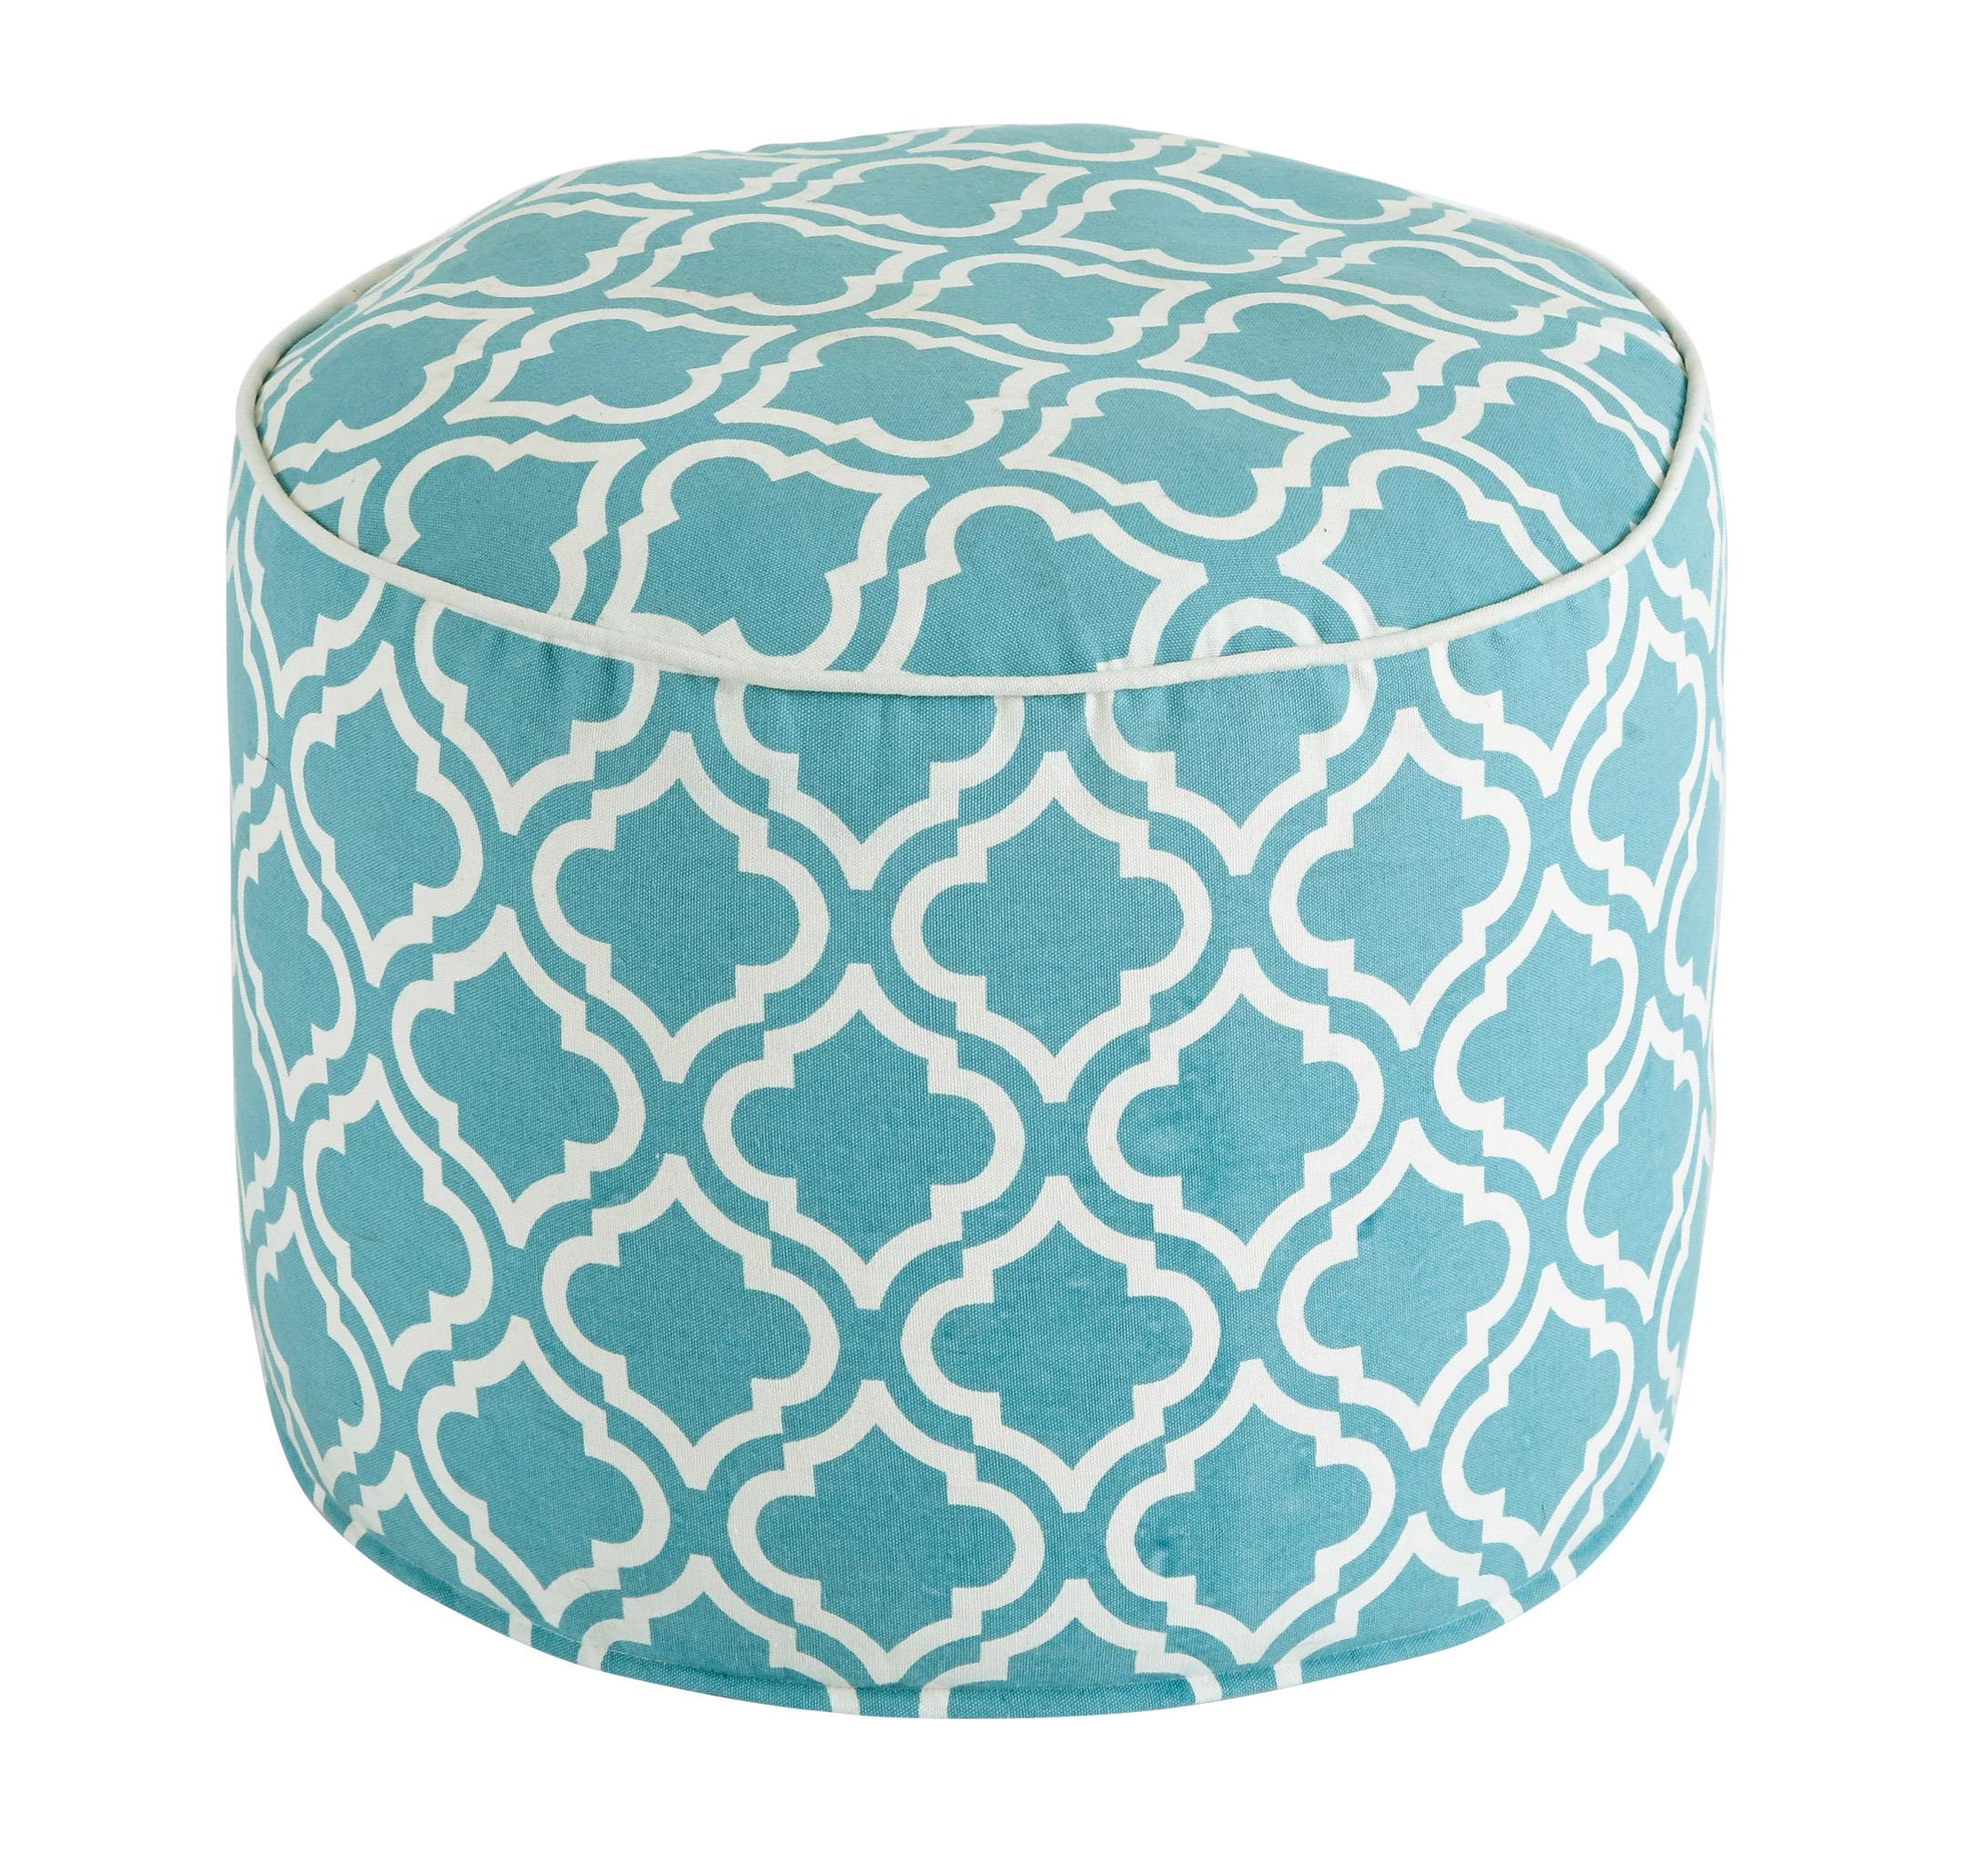 Signature Design by Ashley Poufs Geometric - Turquoise Pouf - Item Number: A1000428